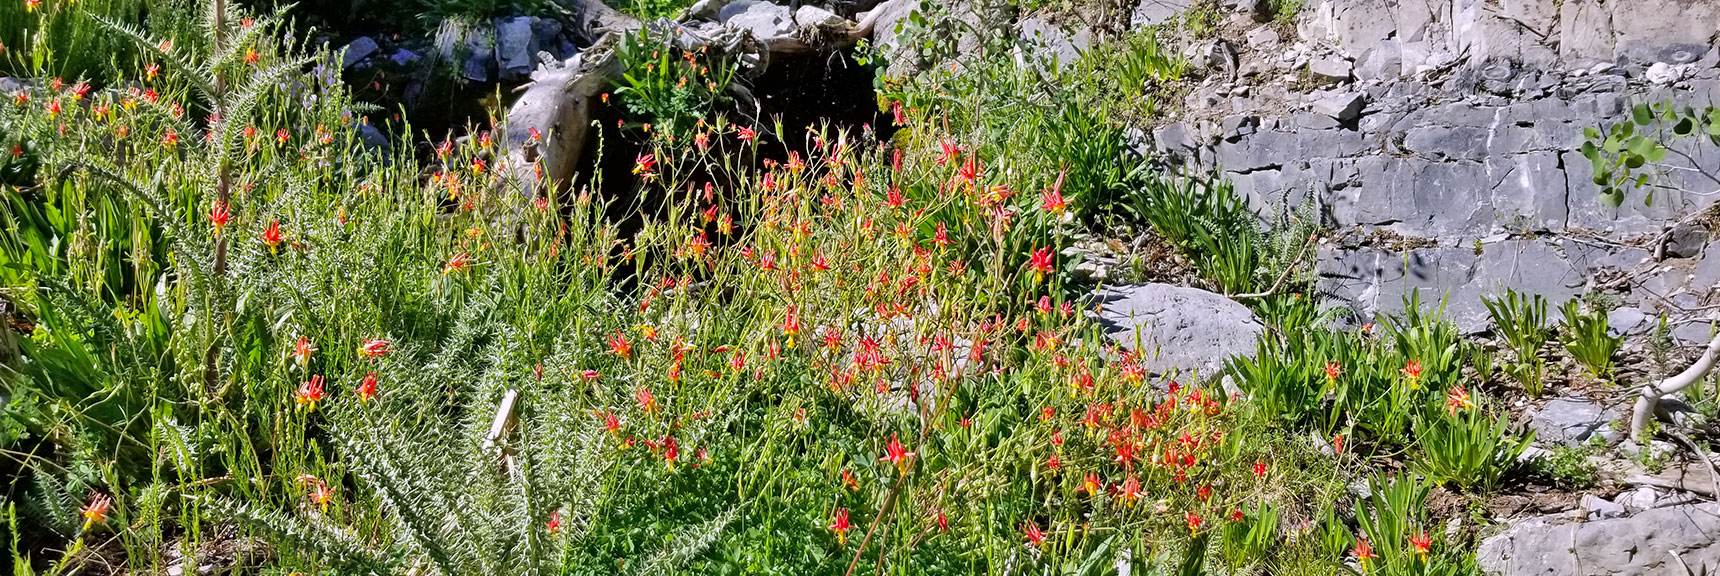 Field of Columbine Wildflowers in Canyon Wash | Cathedral Rock to South Ridge Kyle Canyon Summit, Nevada